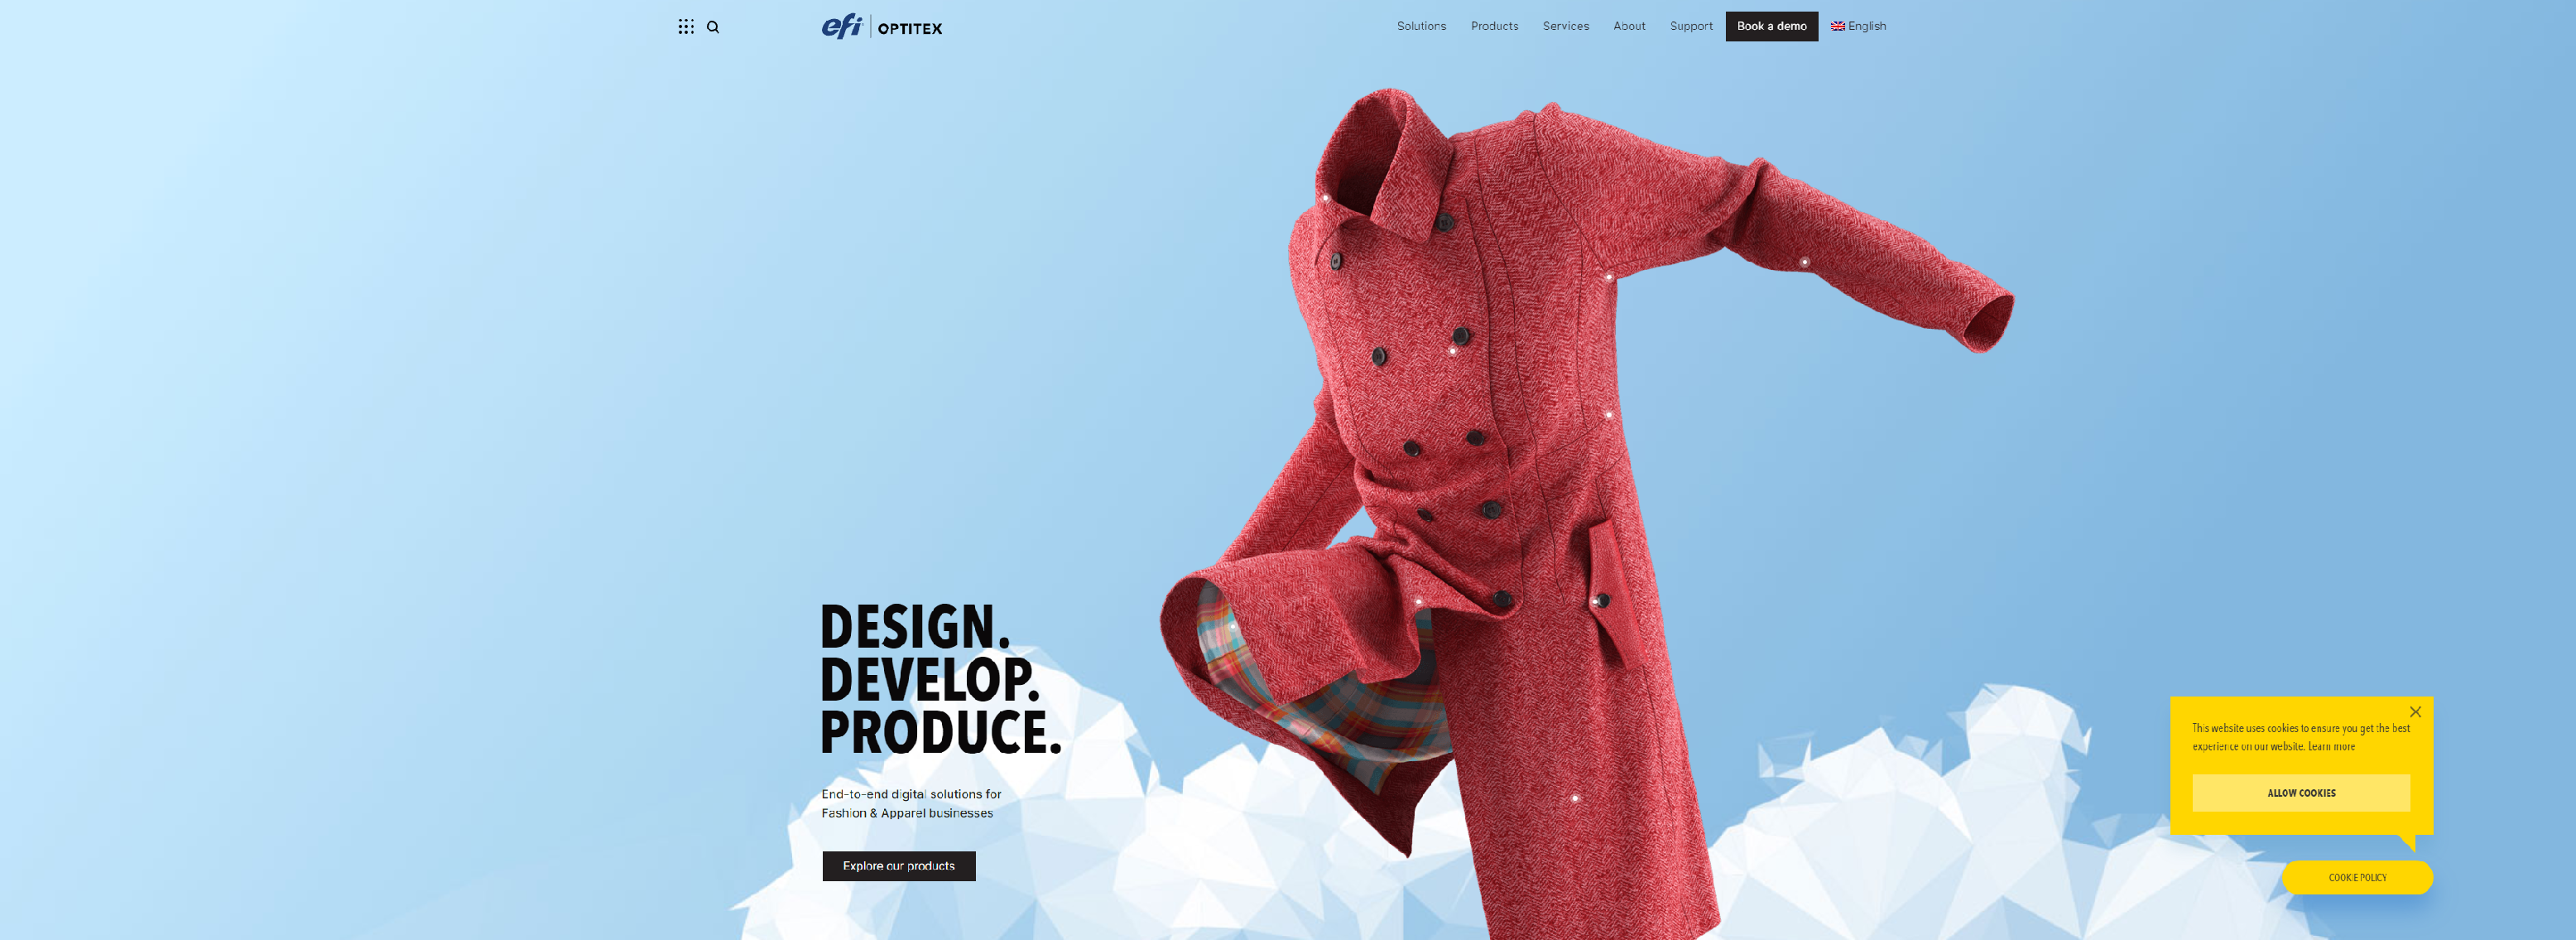 Top 7 Best Clothing Design Software For Professional